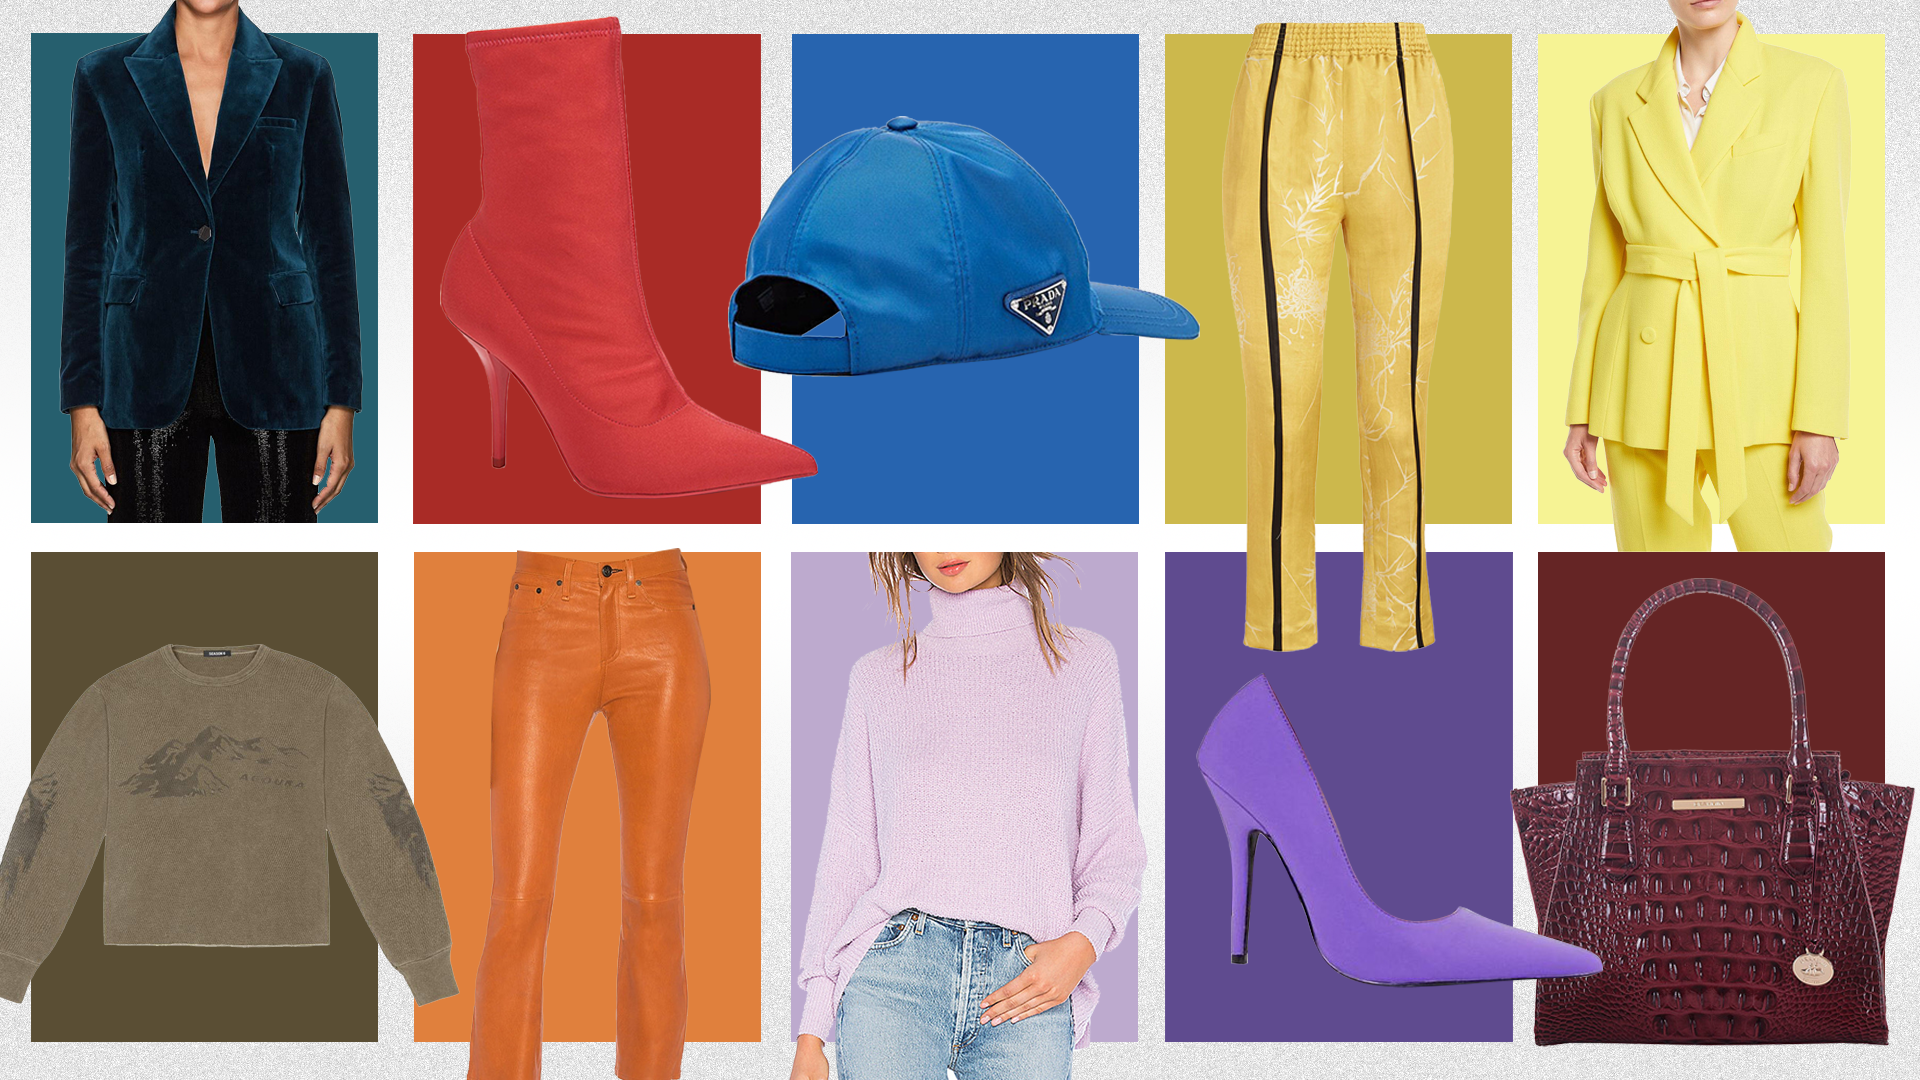 Must-Have Wardrobe Items in Each of Pantone's Fall/Winter 2018 Colors